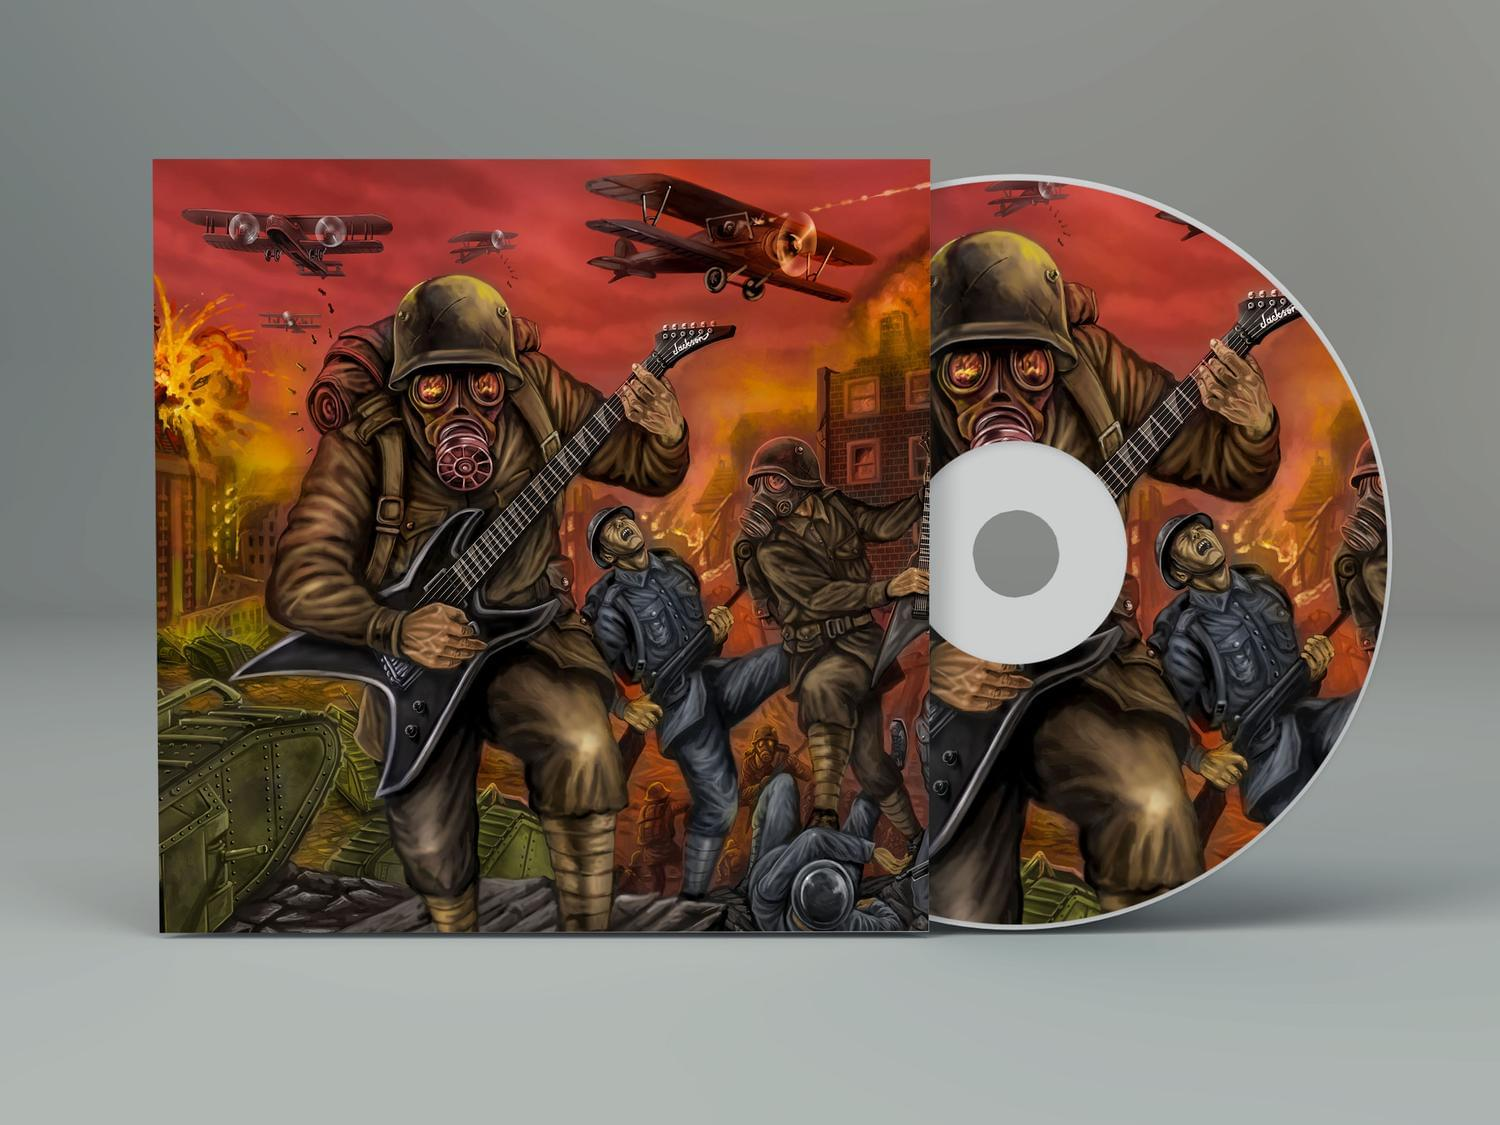 Band CD / DVD Cover Design by badyou23 - 118985